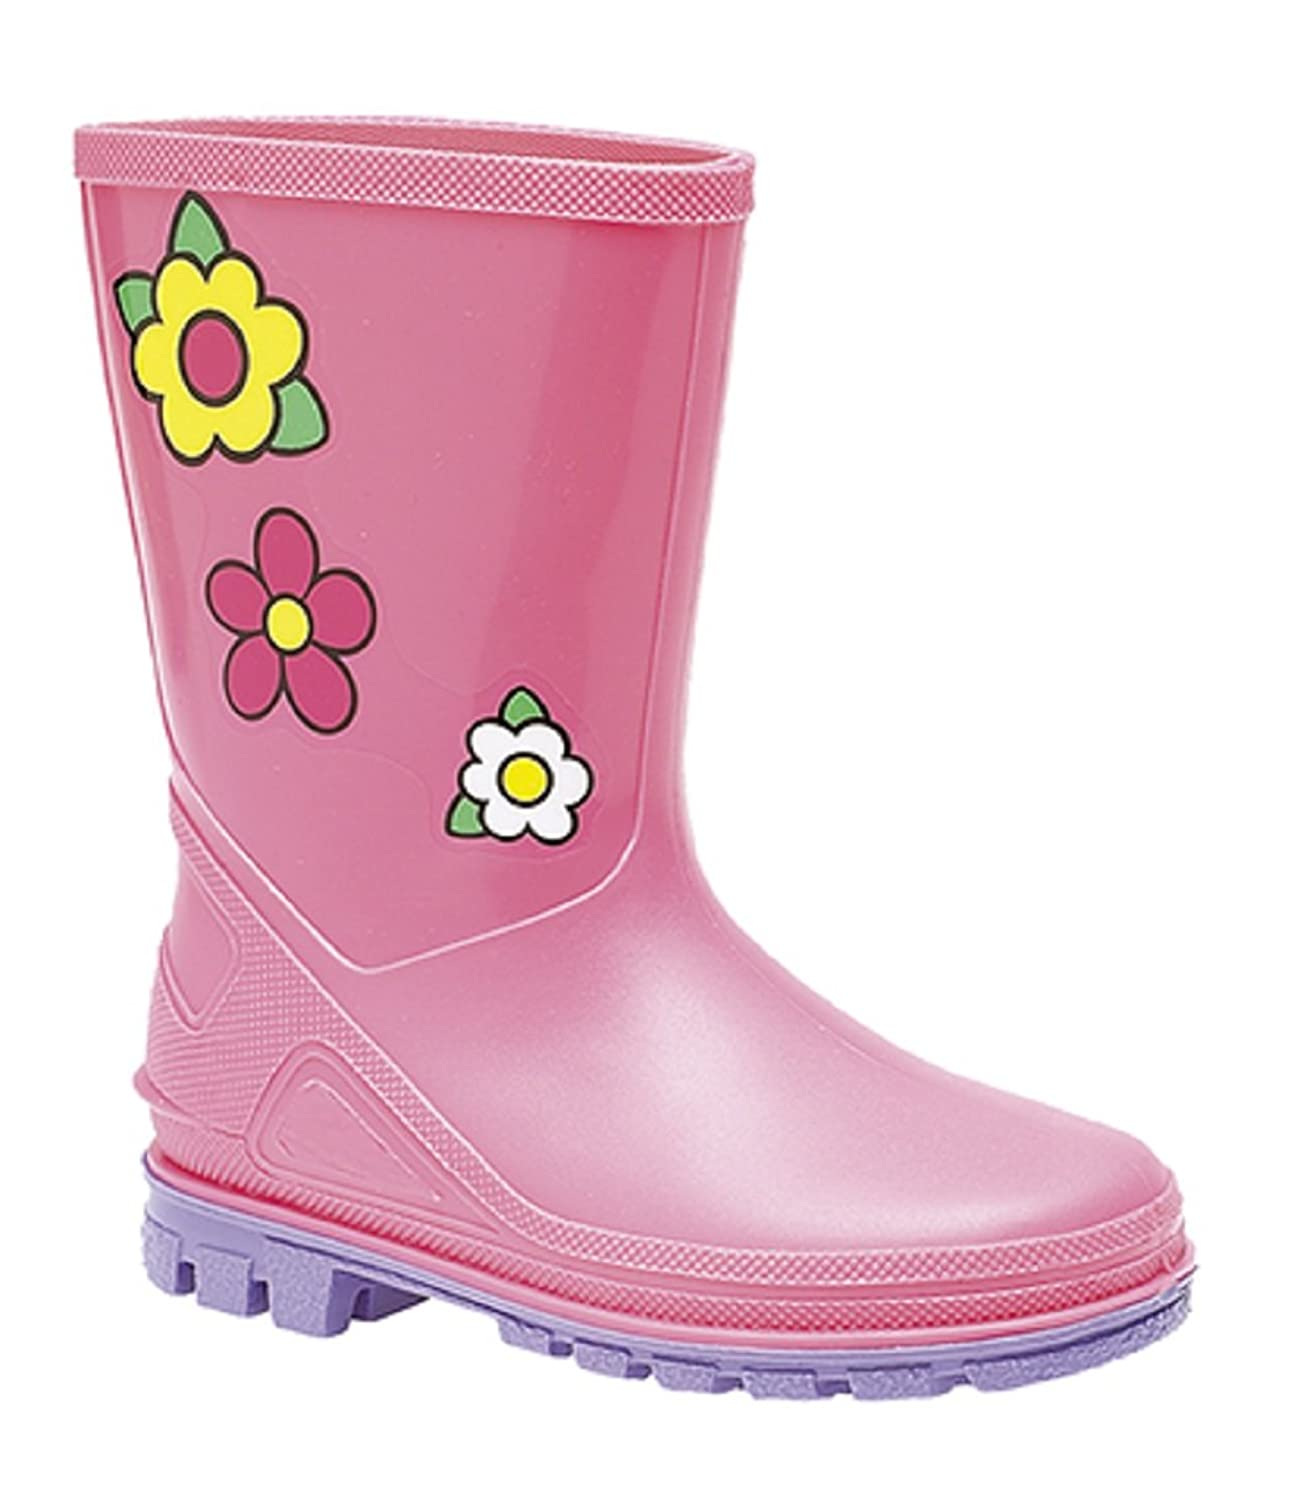 childrens u0027kids puddle u0027 wellies uk sizes kids 3 4 5 6 7 8